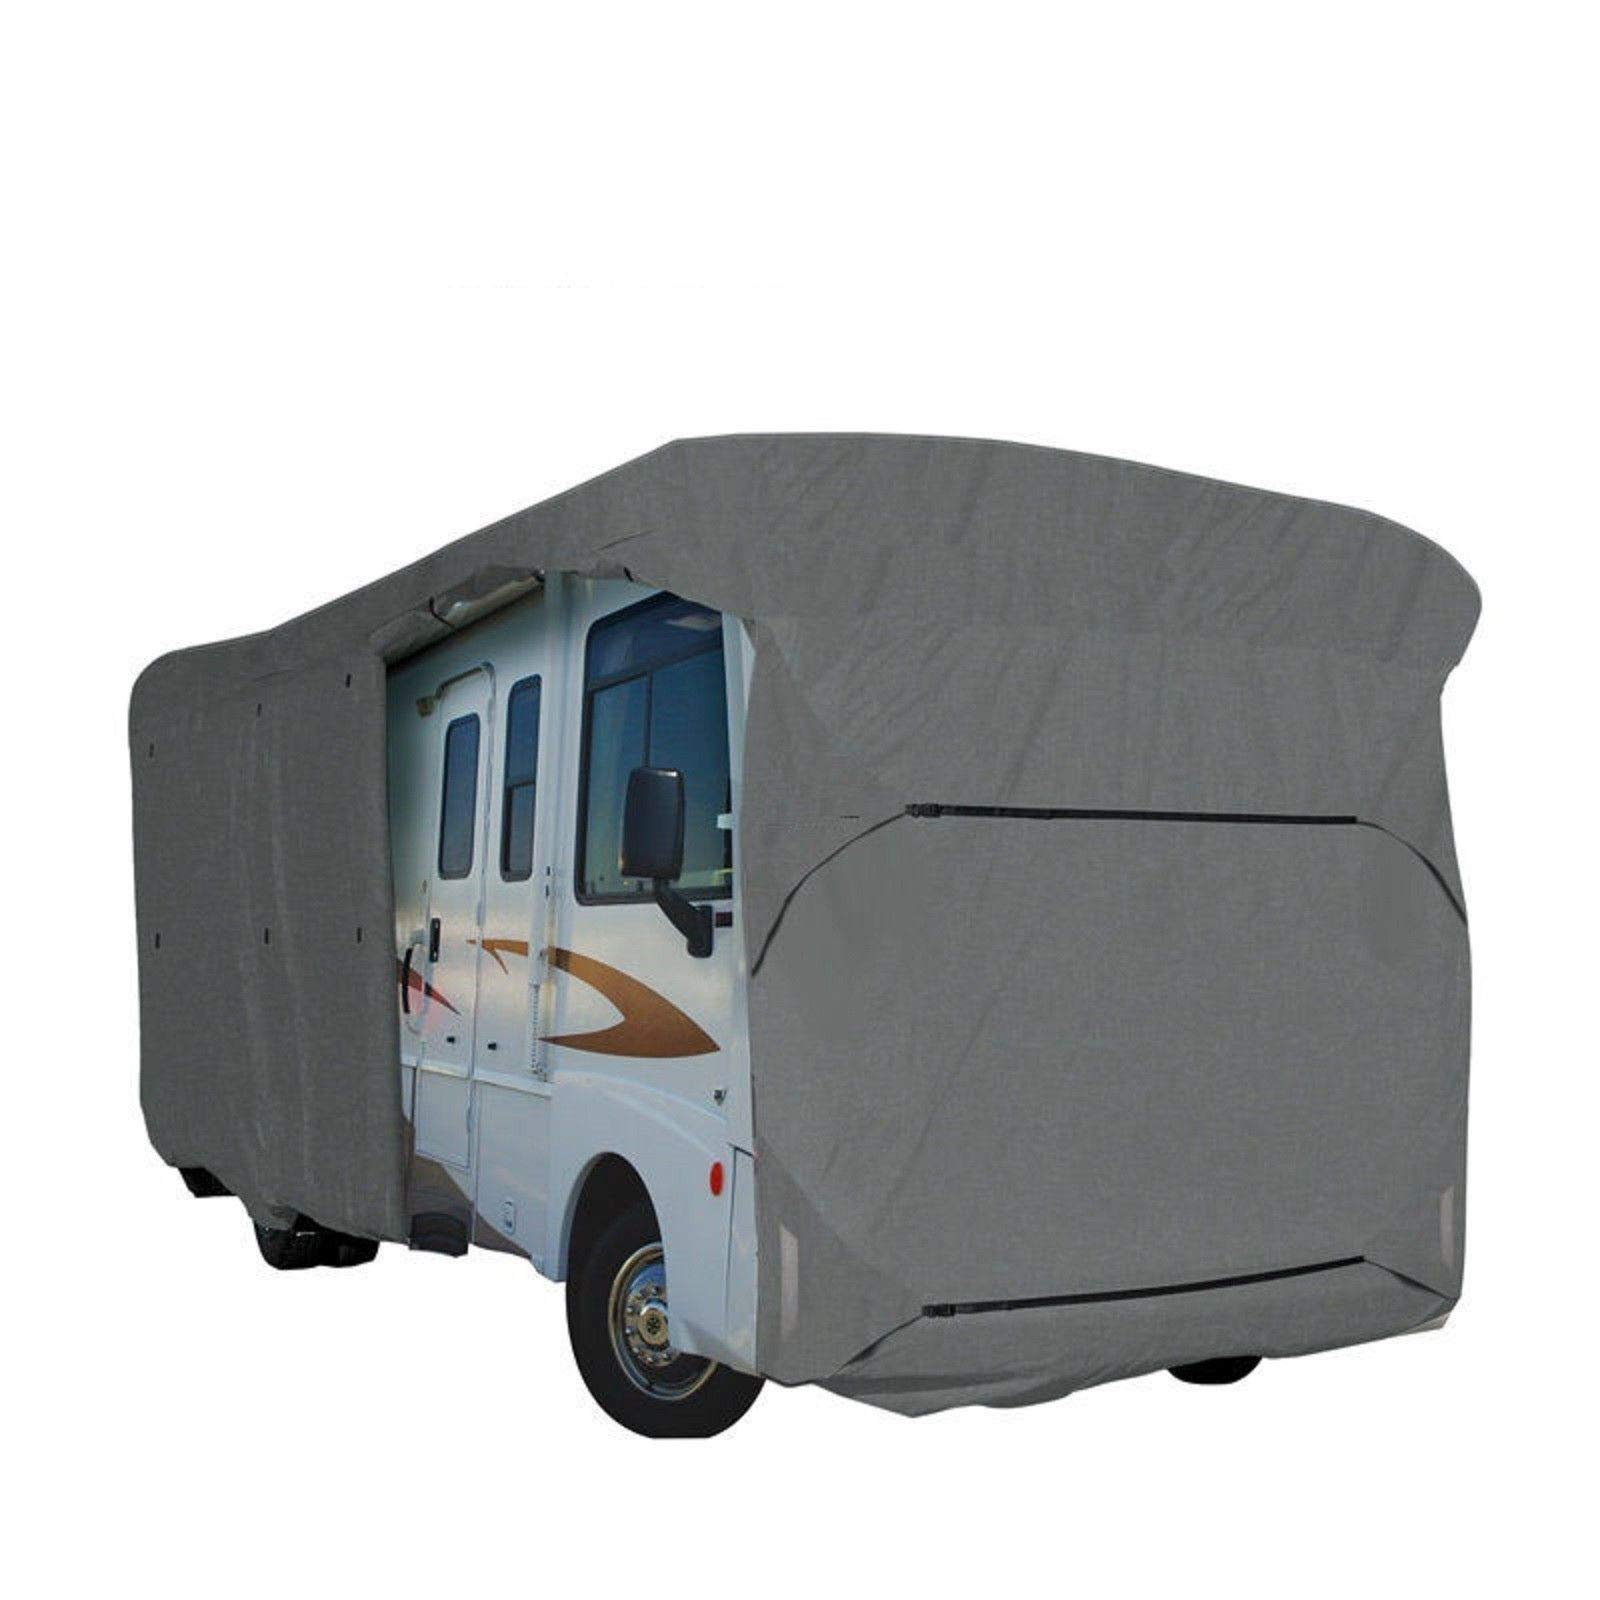 Waterproof RV Cover Motorhome Camper Travel Trailer 28' 29', 30' Class A B C by Marine Rv Direct